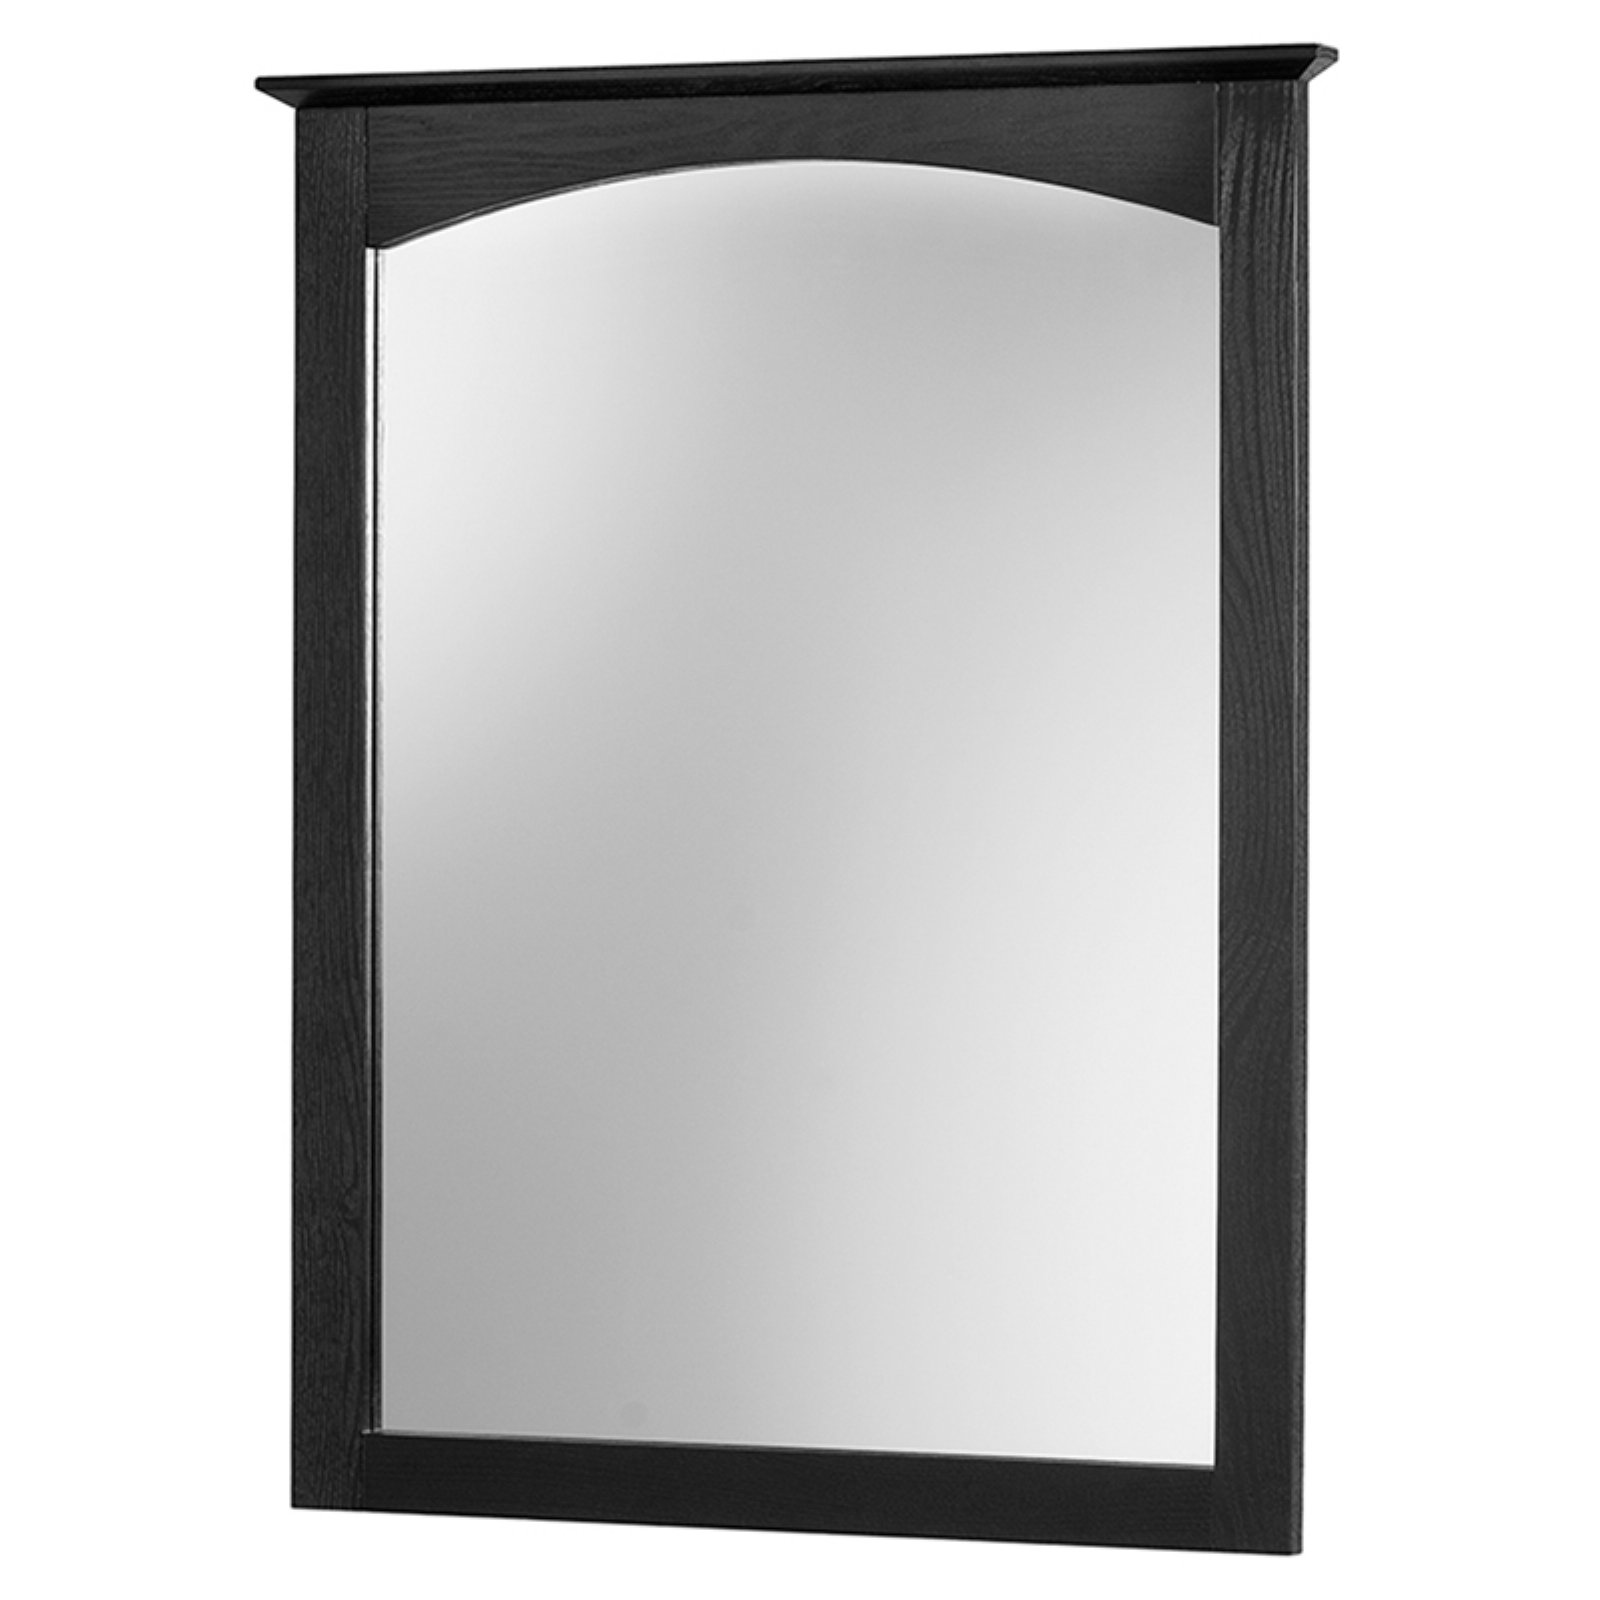 Foremost Columbia 25 in. Bathroom Mirror - Black